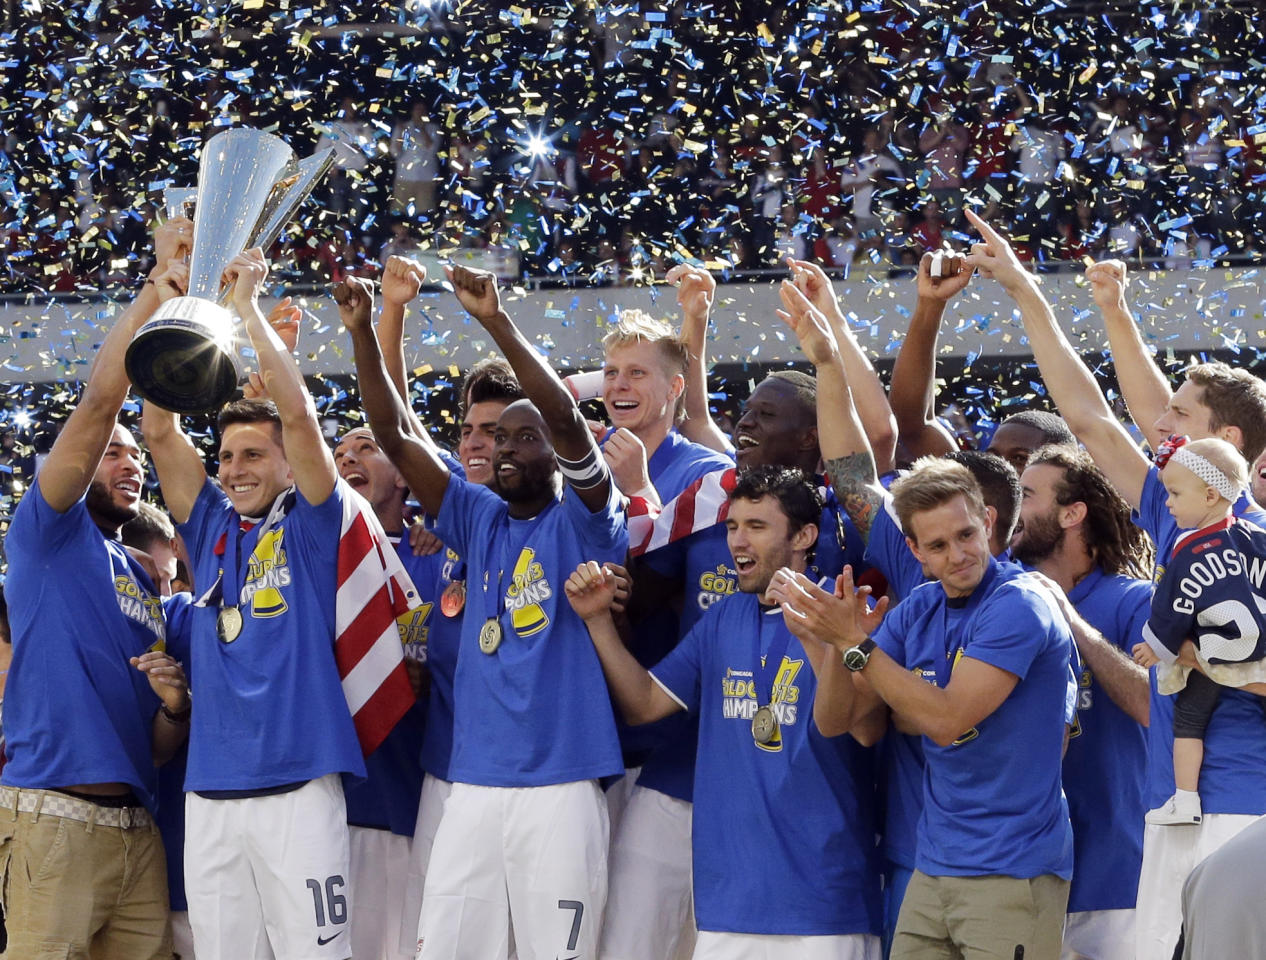 United States' Jose Torres (16), left, holds the trophy as he celebrates with teammates after defeating Panama 1-0 during the CONCACAF Gold Cup final soccer match at Soldier Field, Sunday, July 28, 2013, in Chicago. (AP Photo/Nam Y. Huh)